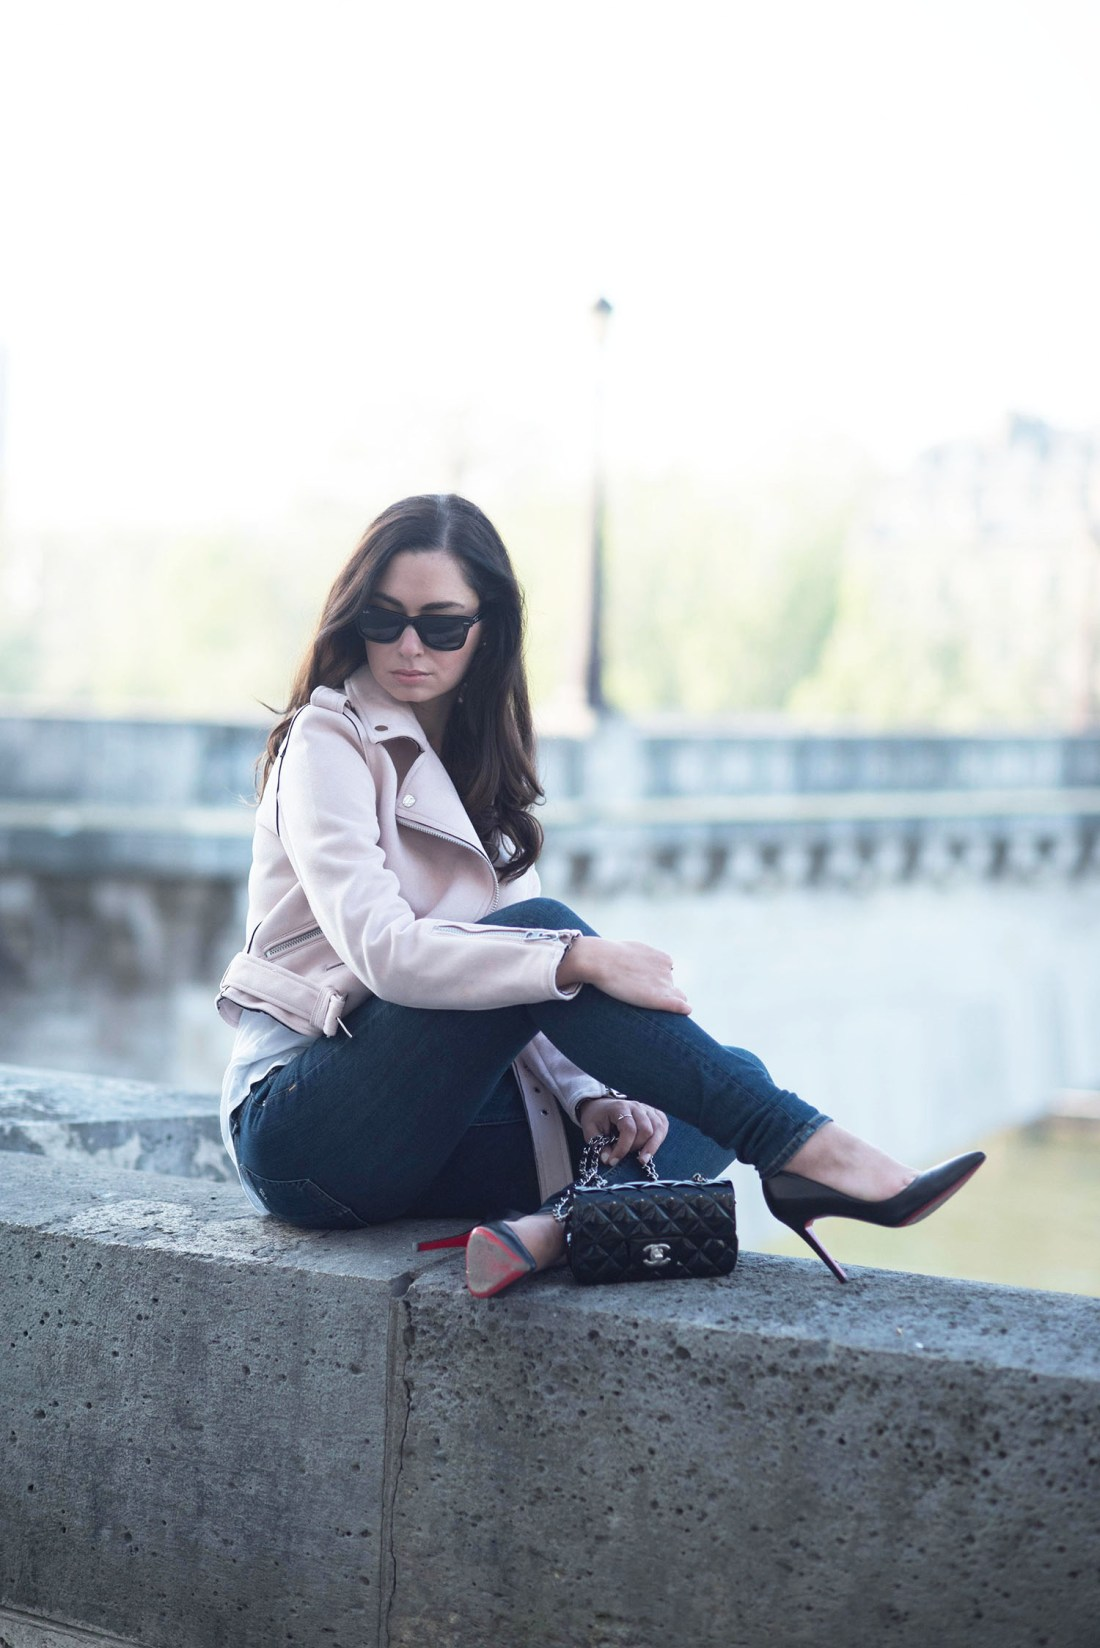 Style blogger Cee Fardoe of Coco & Vera sits on the quad in Paris wearing Christian Louboutin Pigalle pumps and pink Zara jacket